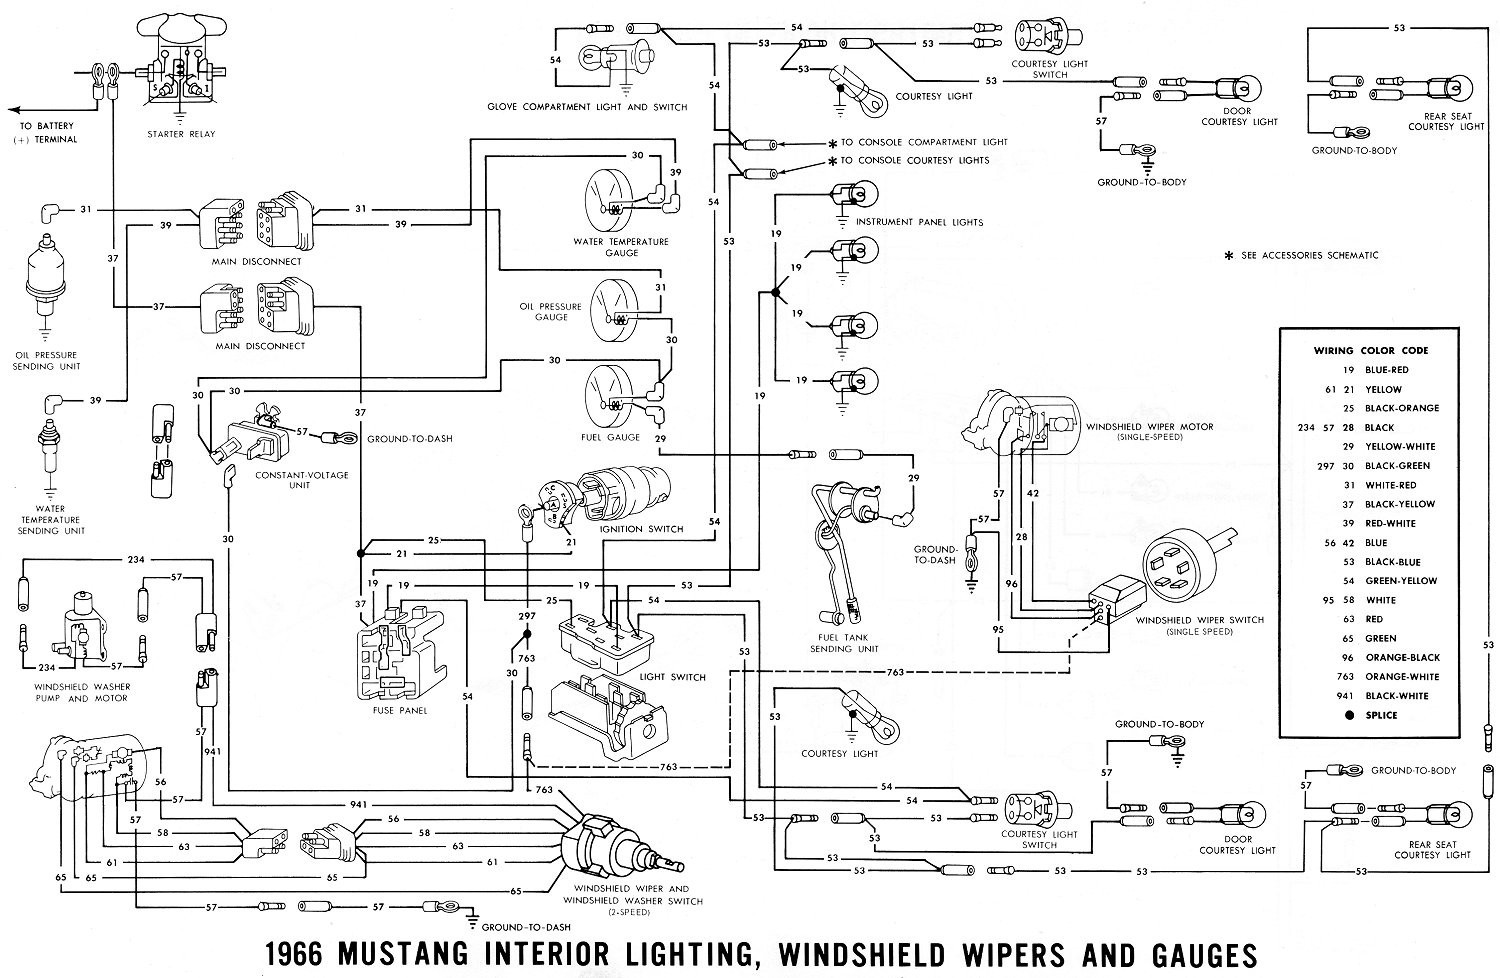 Wiring Diagram 1966 Ford Mustang Interior Lighting Windshield Noticeable 65